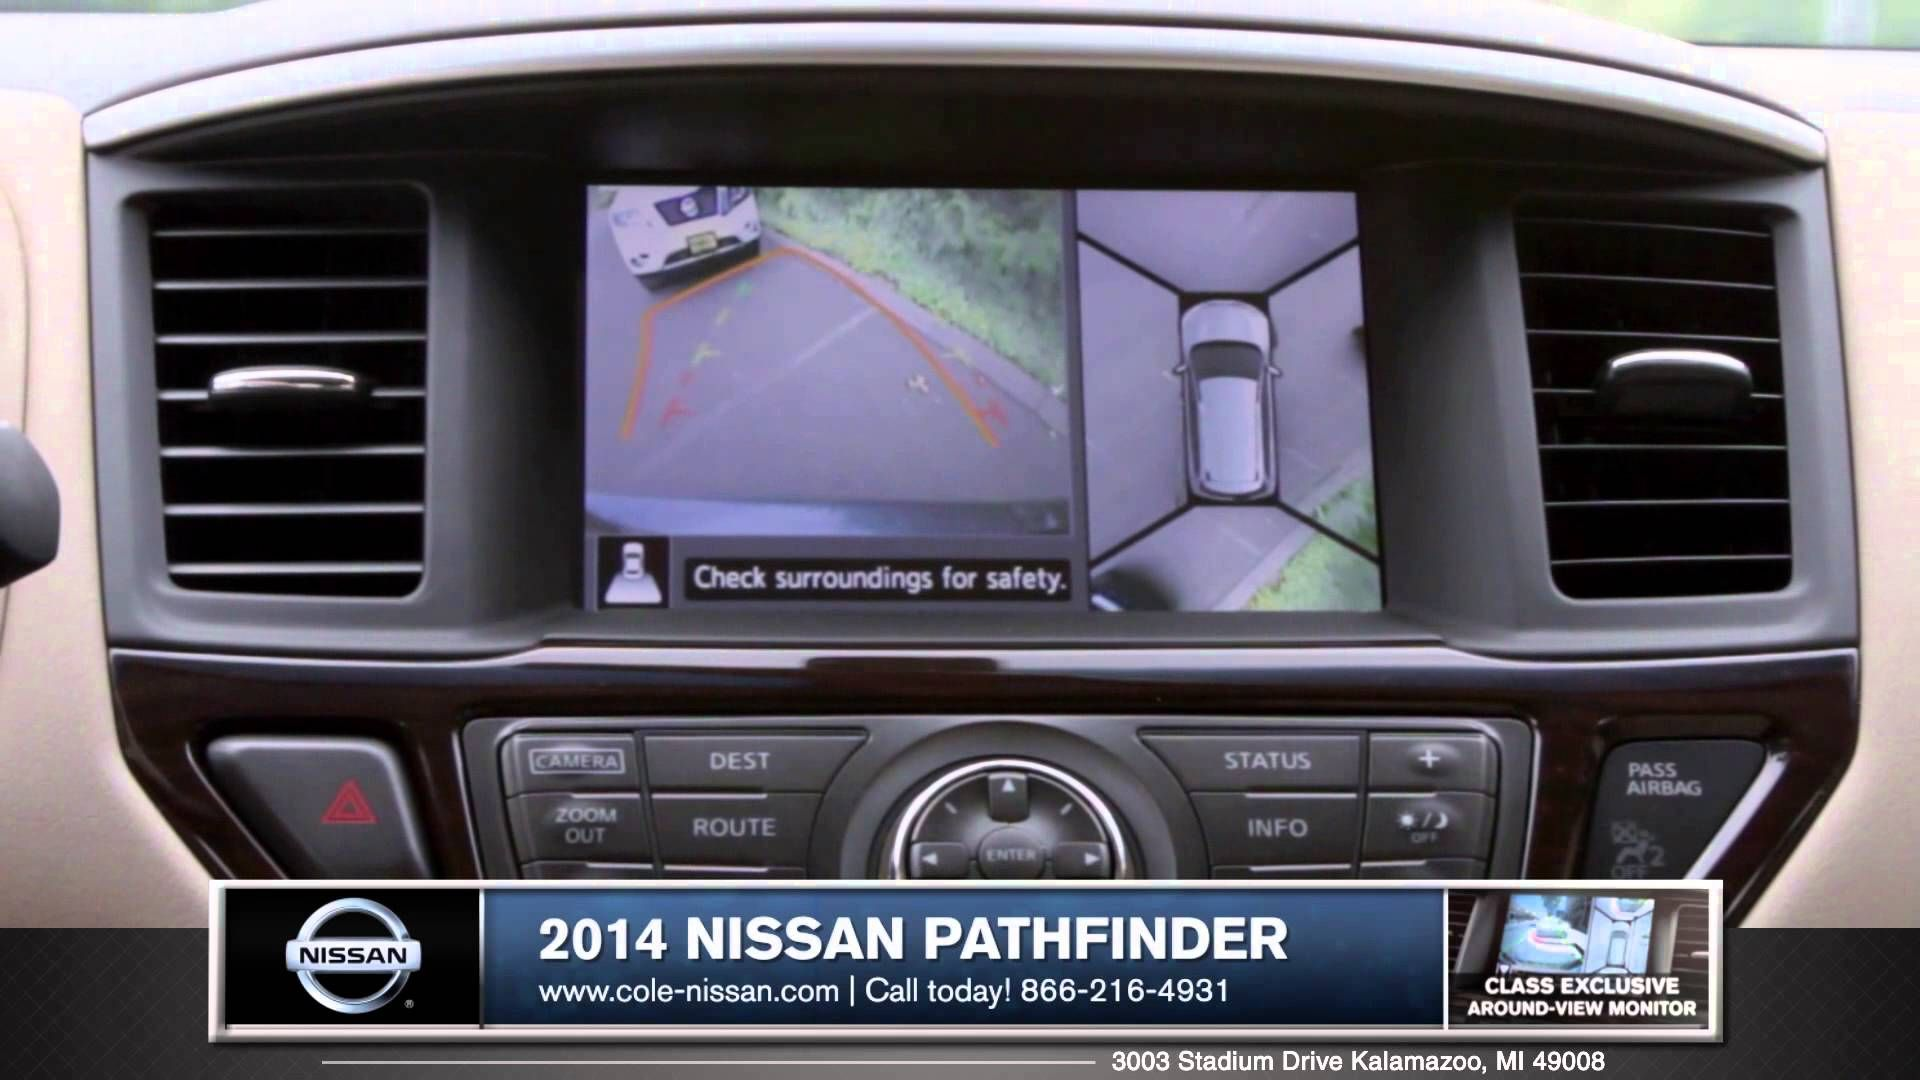 Grand Rapids, MI   2014 Nissan Pathfinder Safety Review From Cole Nissan  Http:/